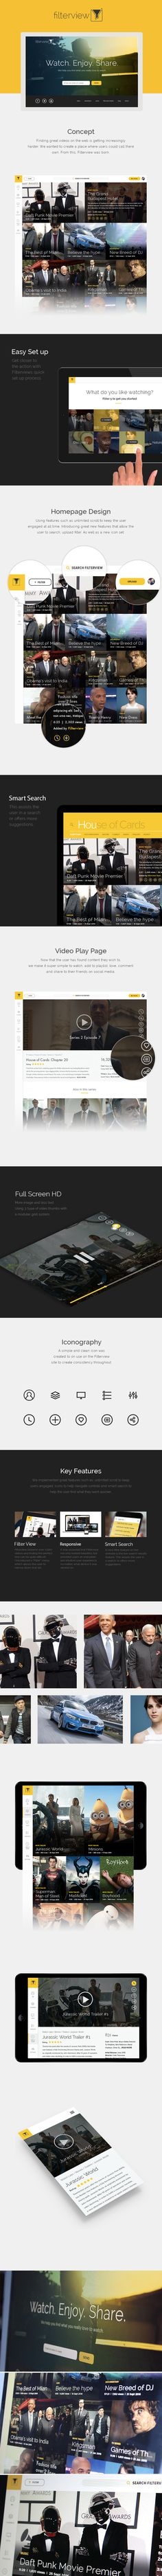 ui, ux, flat, application, grid, list, icon, icons, button, navigation, interface, responsive, desktop, app, web, website, simple, clean, dashboard, iPhone, minimal, concept, redesign, app, stream, innovation, broadcast, tv, content, storytelling, engagement, viewers, house of cards, netflix, presto,